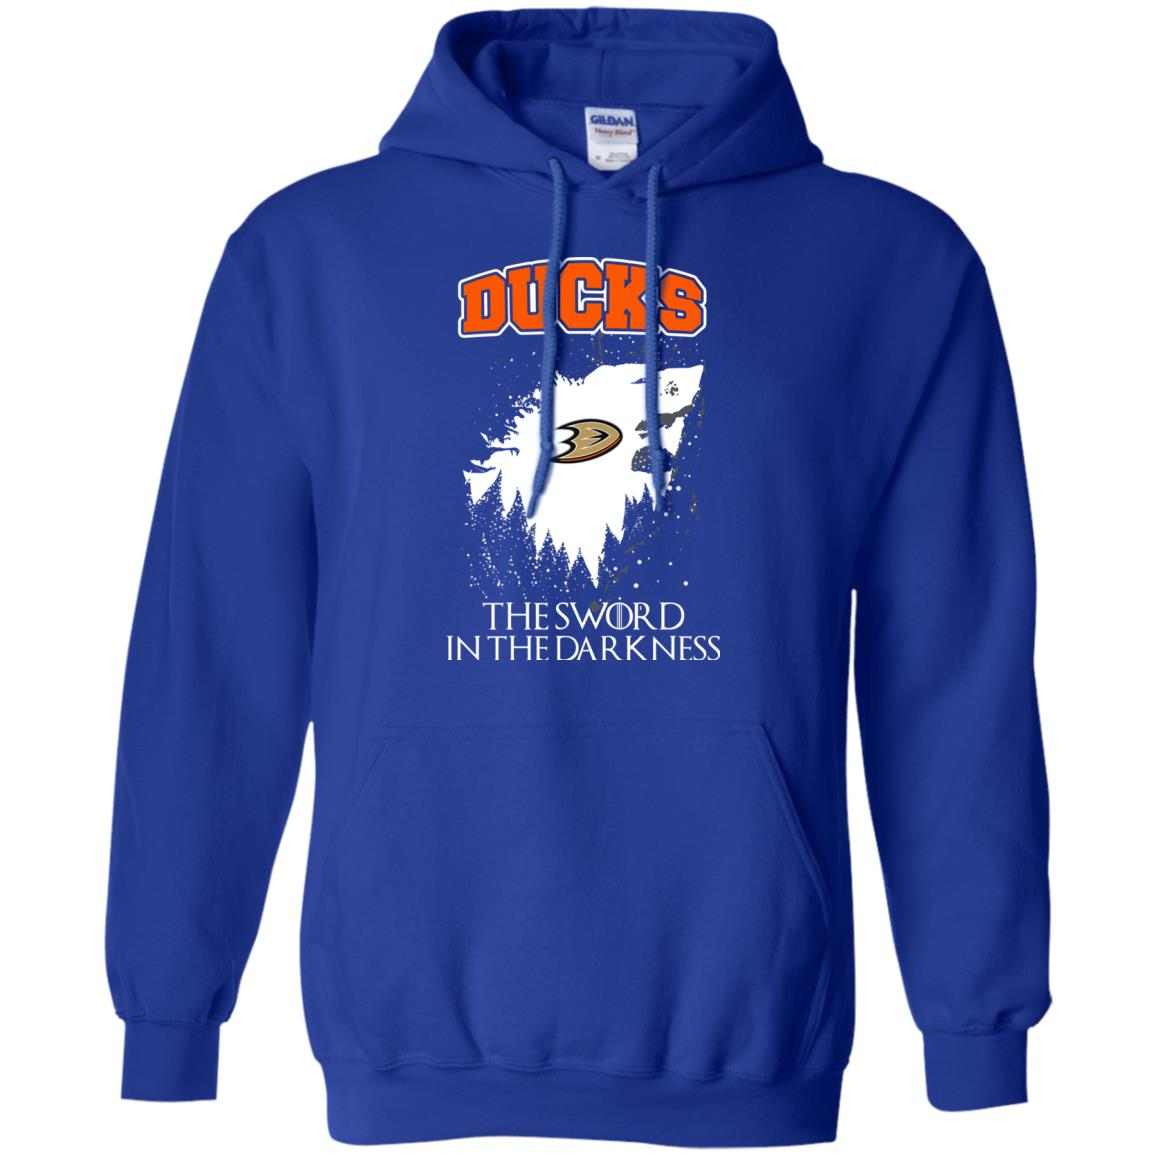 Anaheim Ducks Game Of Thrones T shirts The Sword In The Darkness Hoodies Sweatshirts